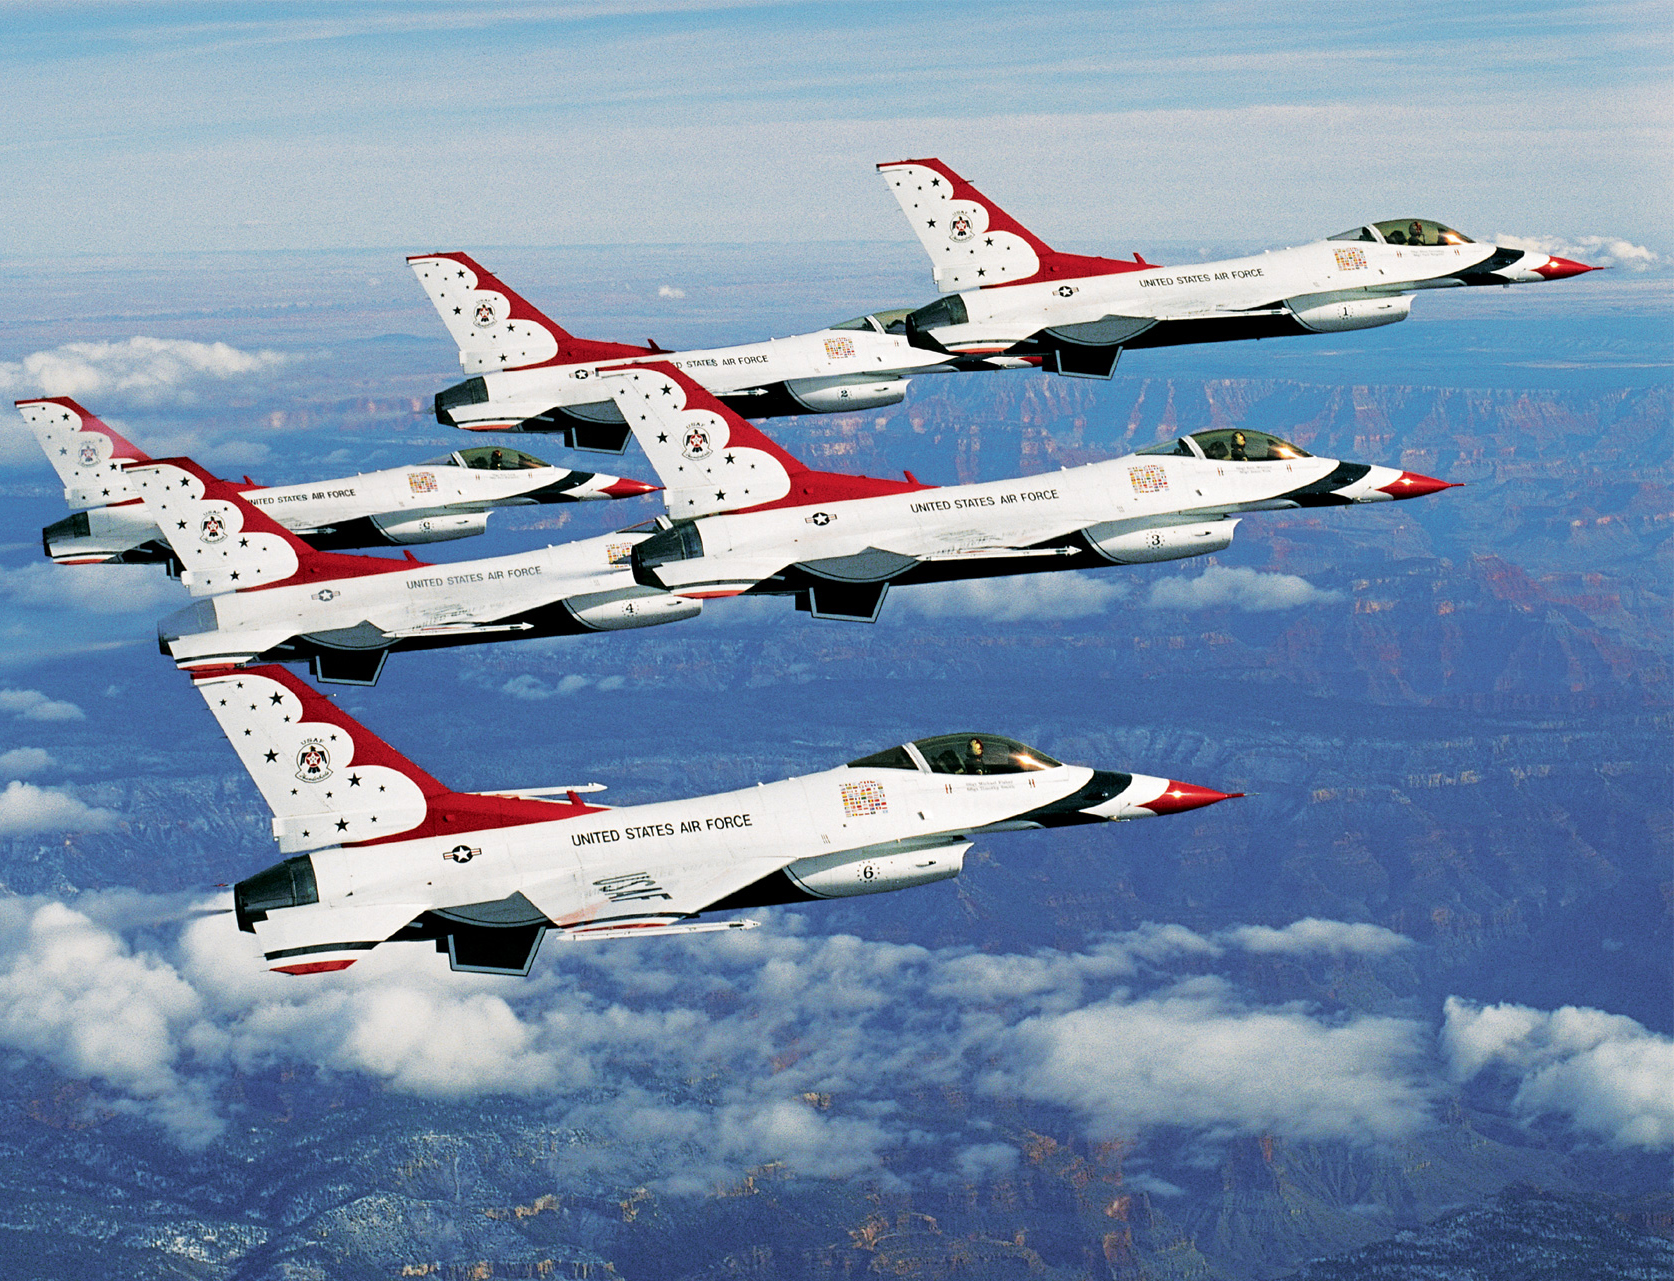 united states airforce thunderbirds wallpaper 1674 x 1281 wallpaper 1674x1281